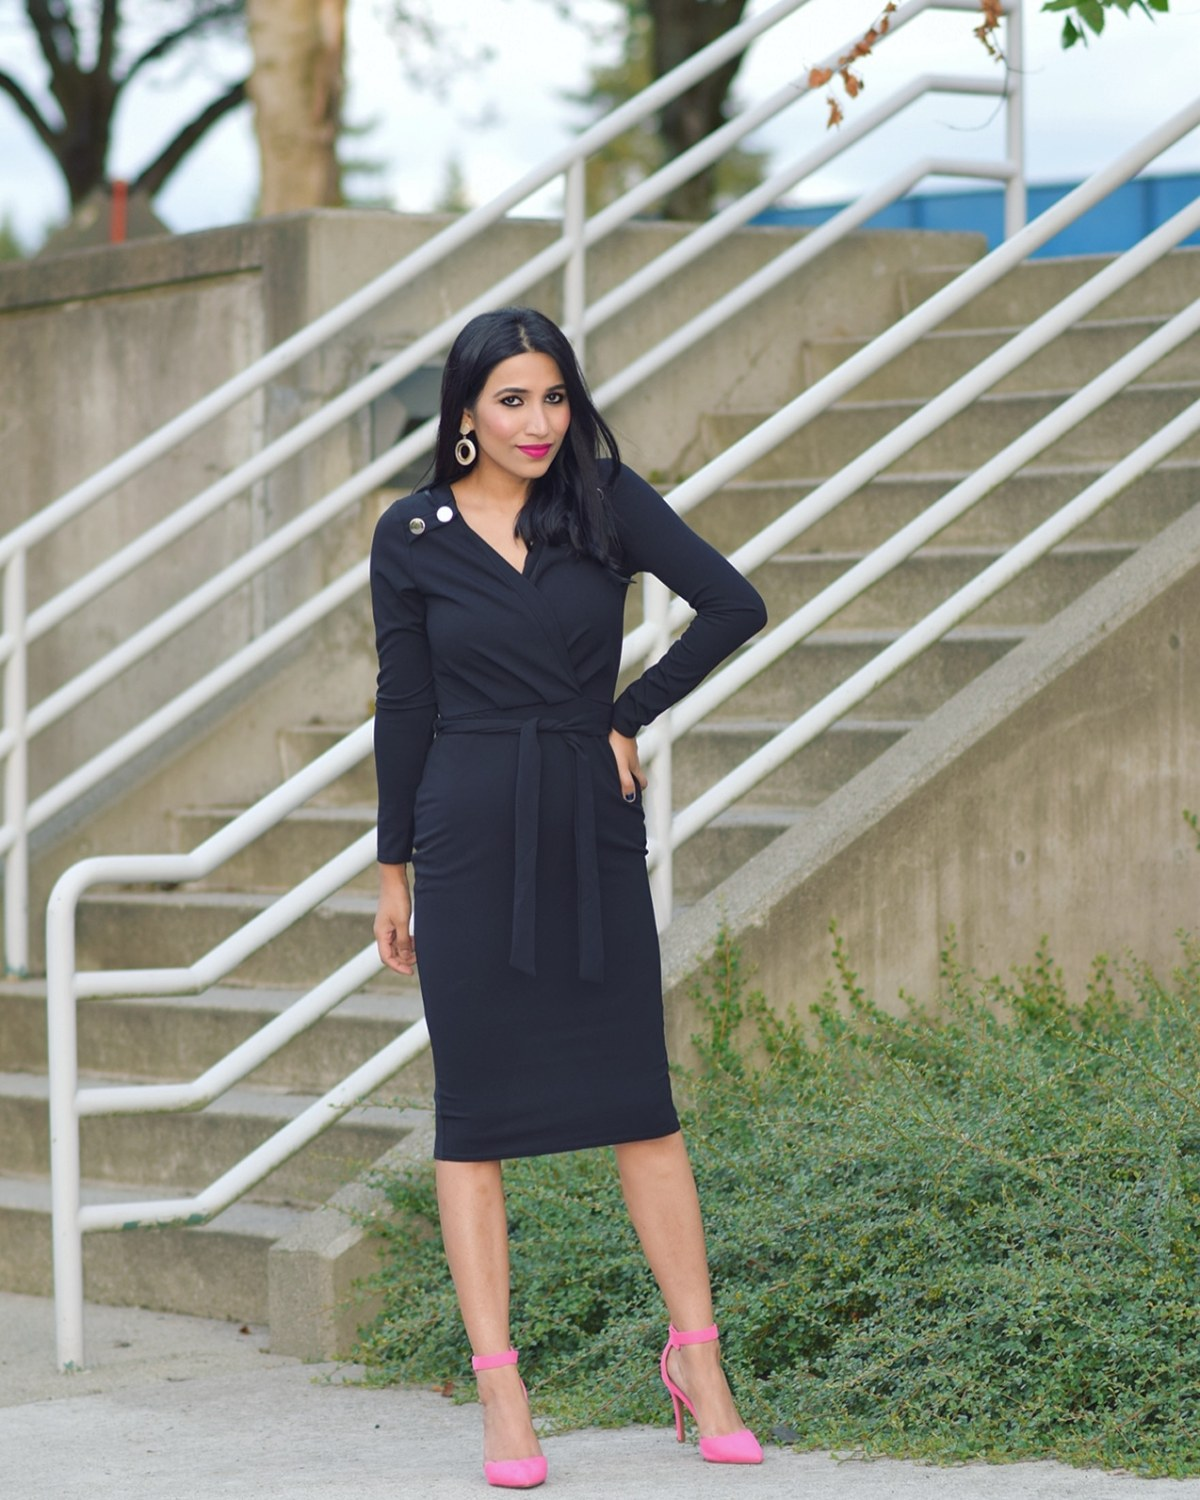 https://femmeluxefinery.com/products/black-low-v-neck-buttons-midi-dress-dorothy